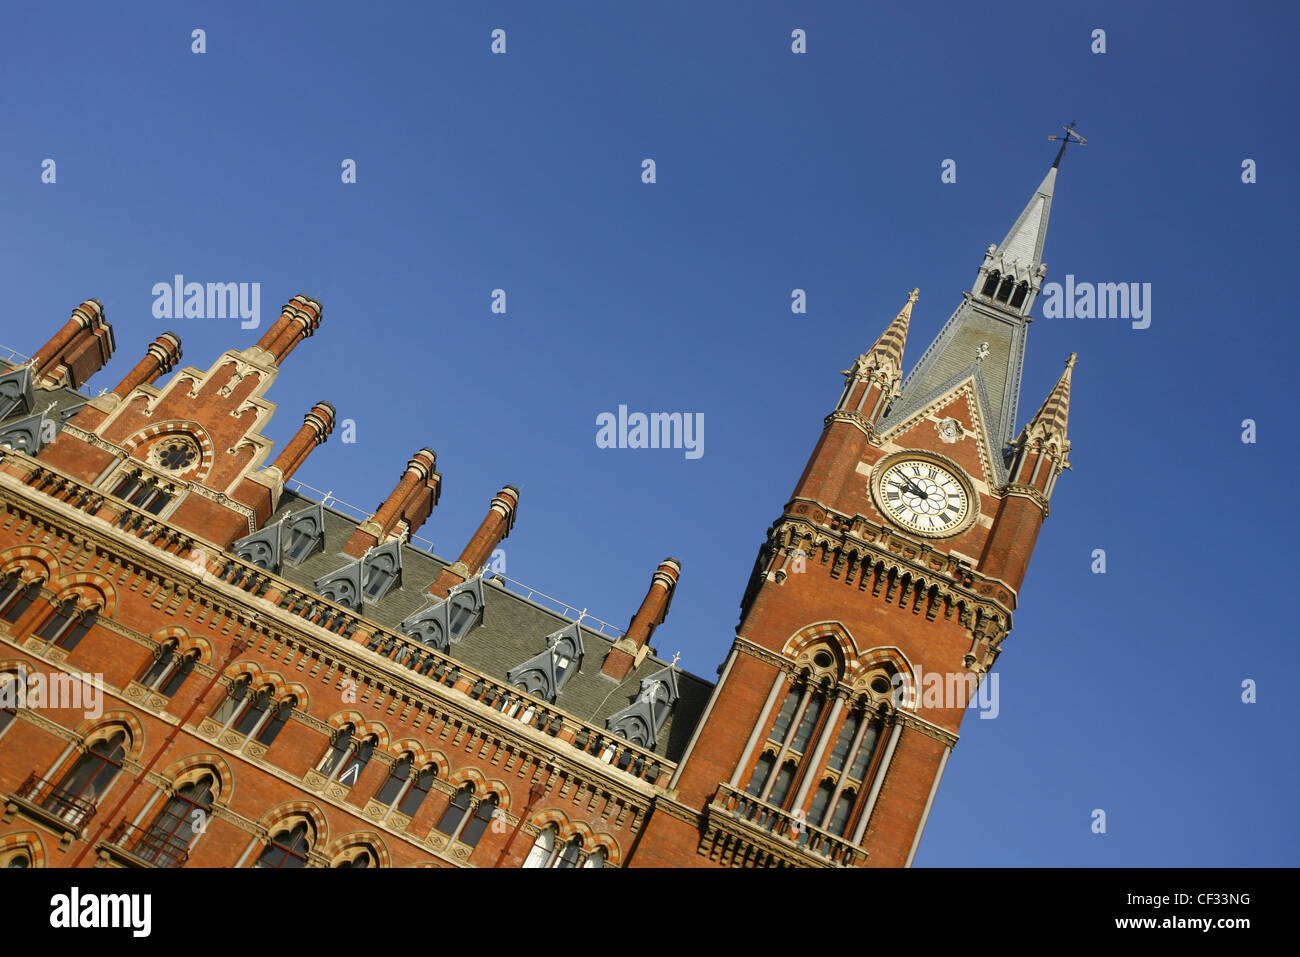 The Victorian architecture and clock tower of St Pancras Station in London. - Stock Image